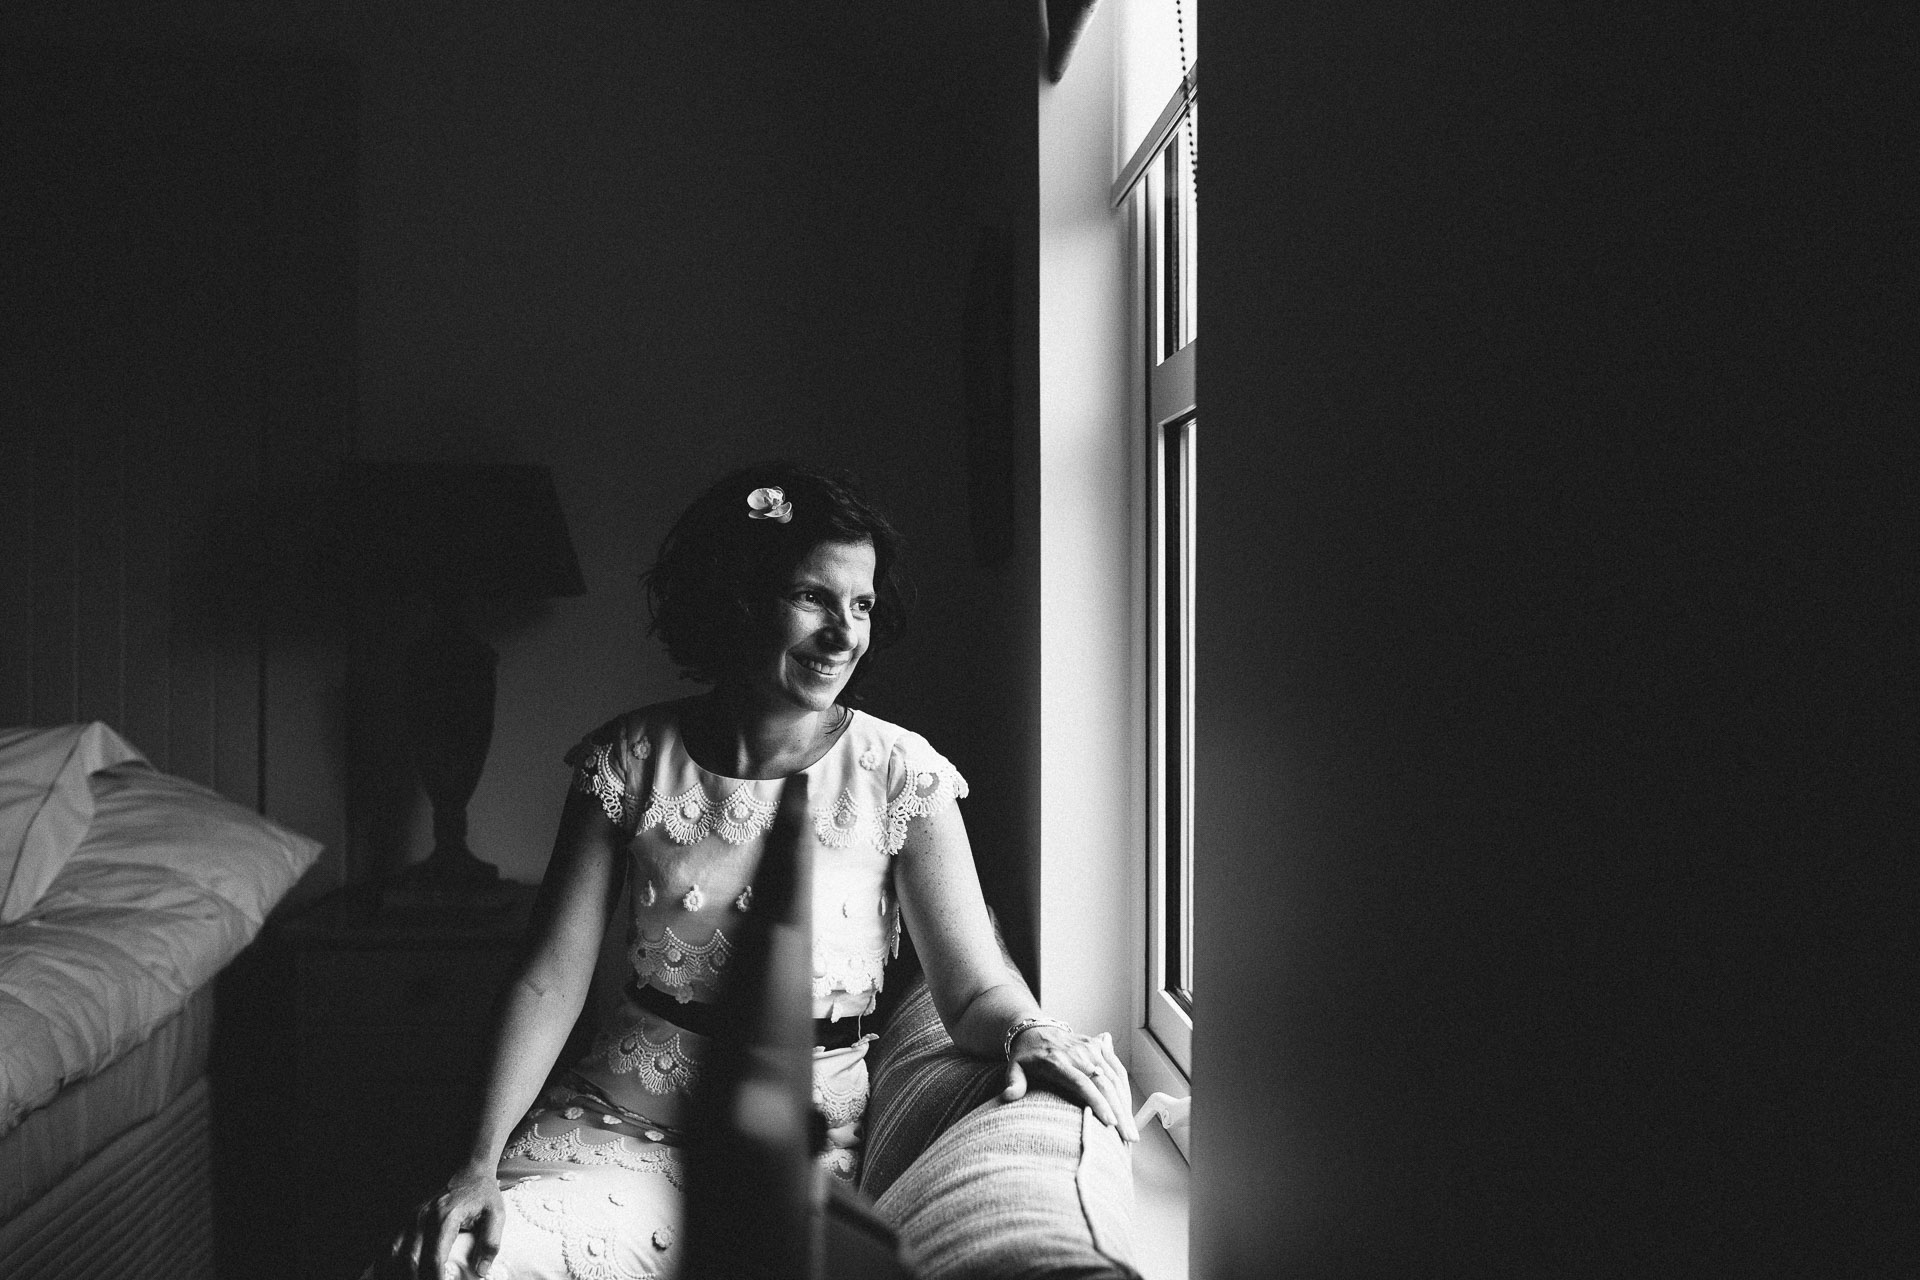 Megan_Matt_Elopement_IntimateWedding_Scotland_IsleOfSkye_JeanLaurentGaudy_055